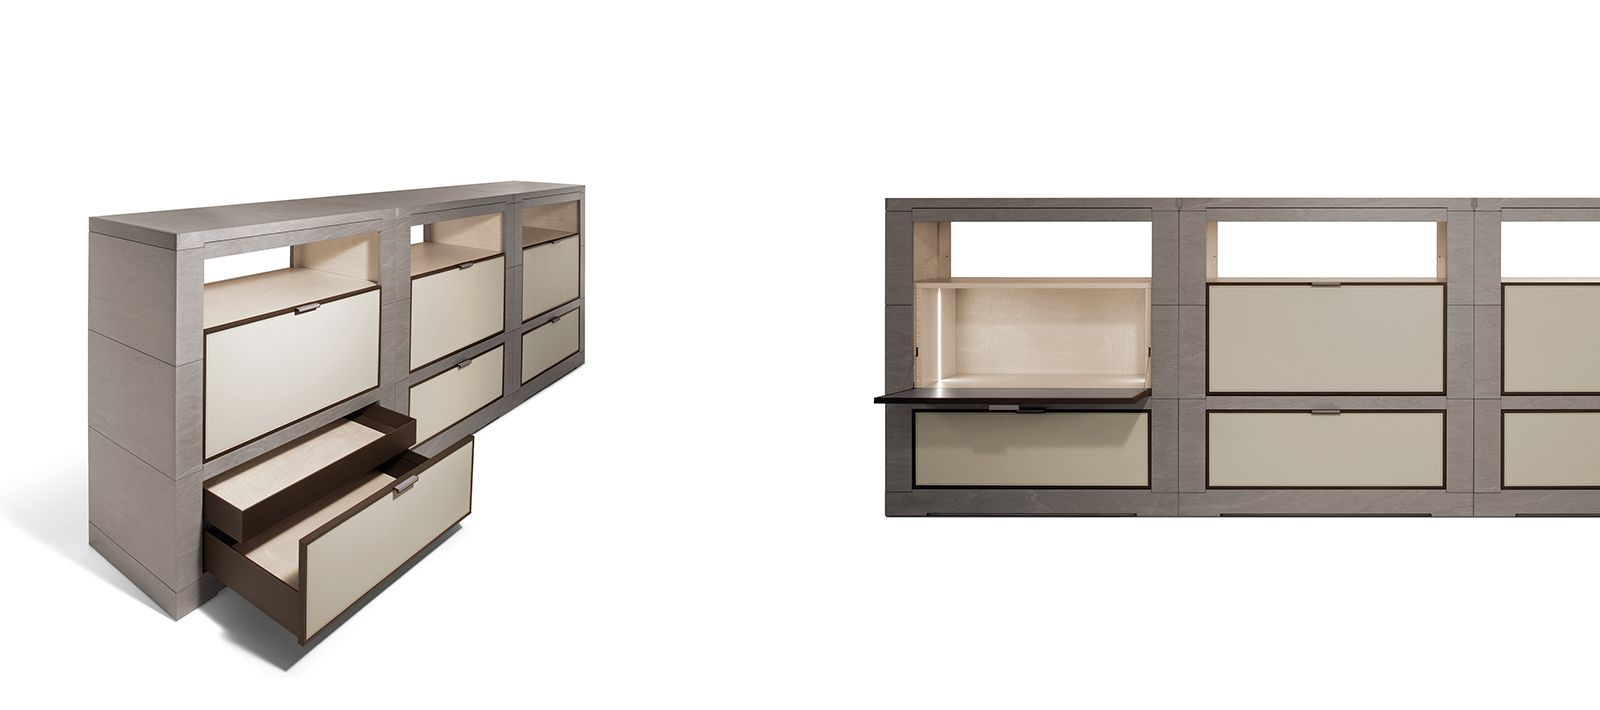 OLI series in new finishes for 2016. Hand made in